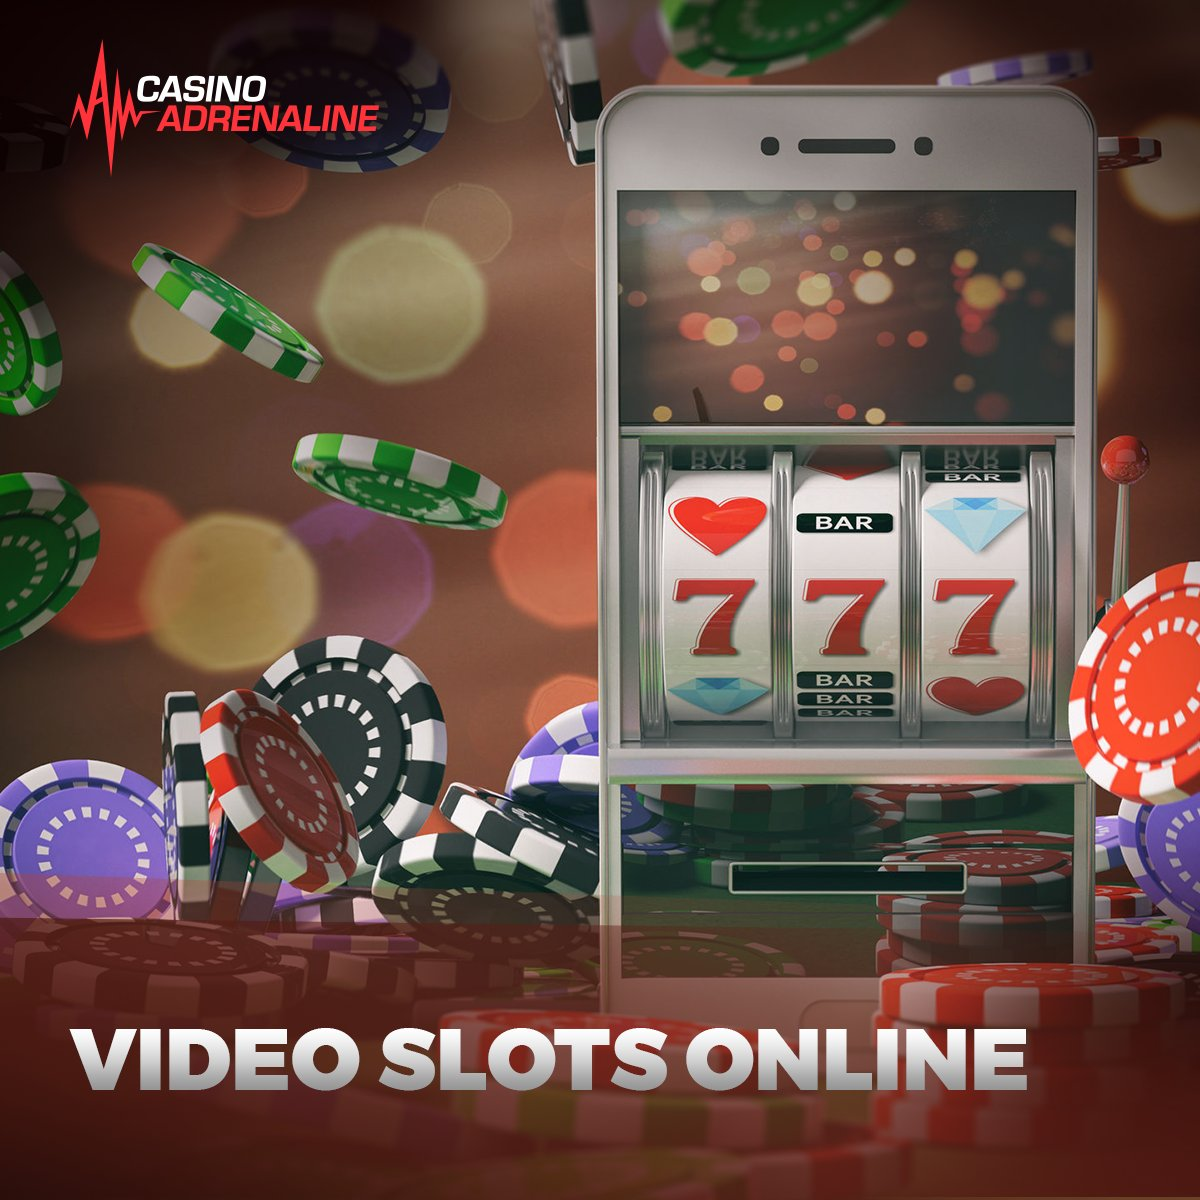 test Twitter Media - When it comes to video slot games, which one has brought you most of the luck? 👌😄 #CasinoAdrenaline #slotgame https://t.co/qYXTtitBAg